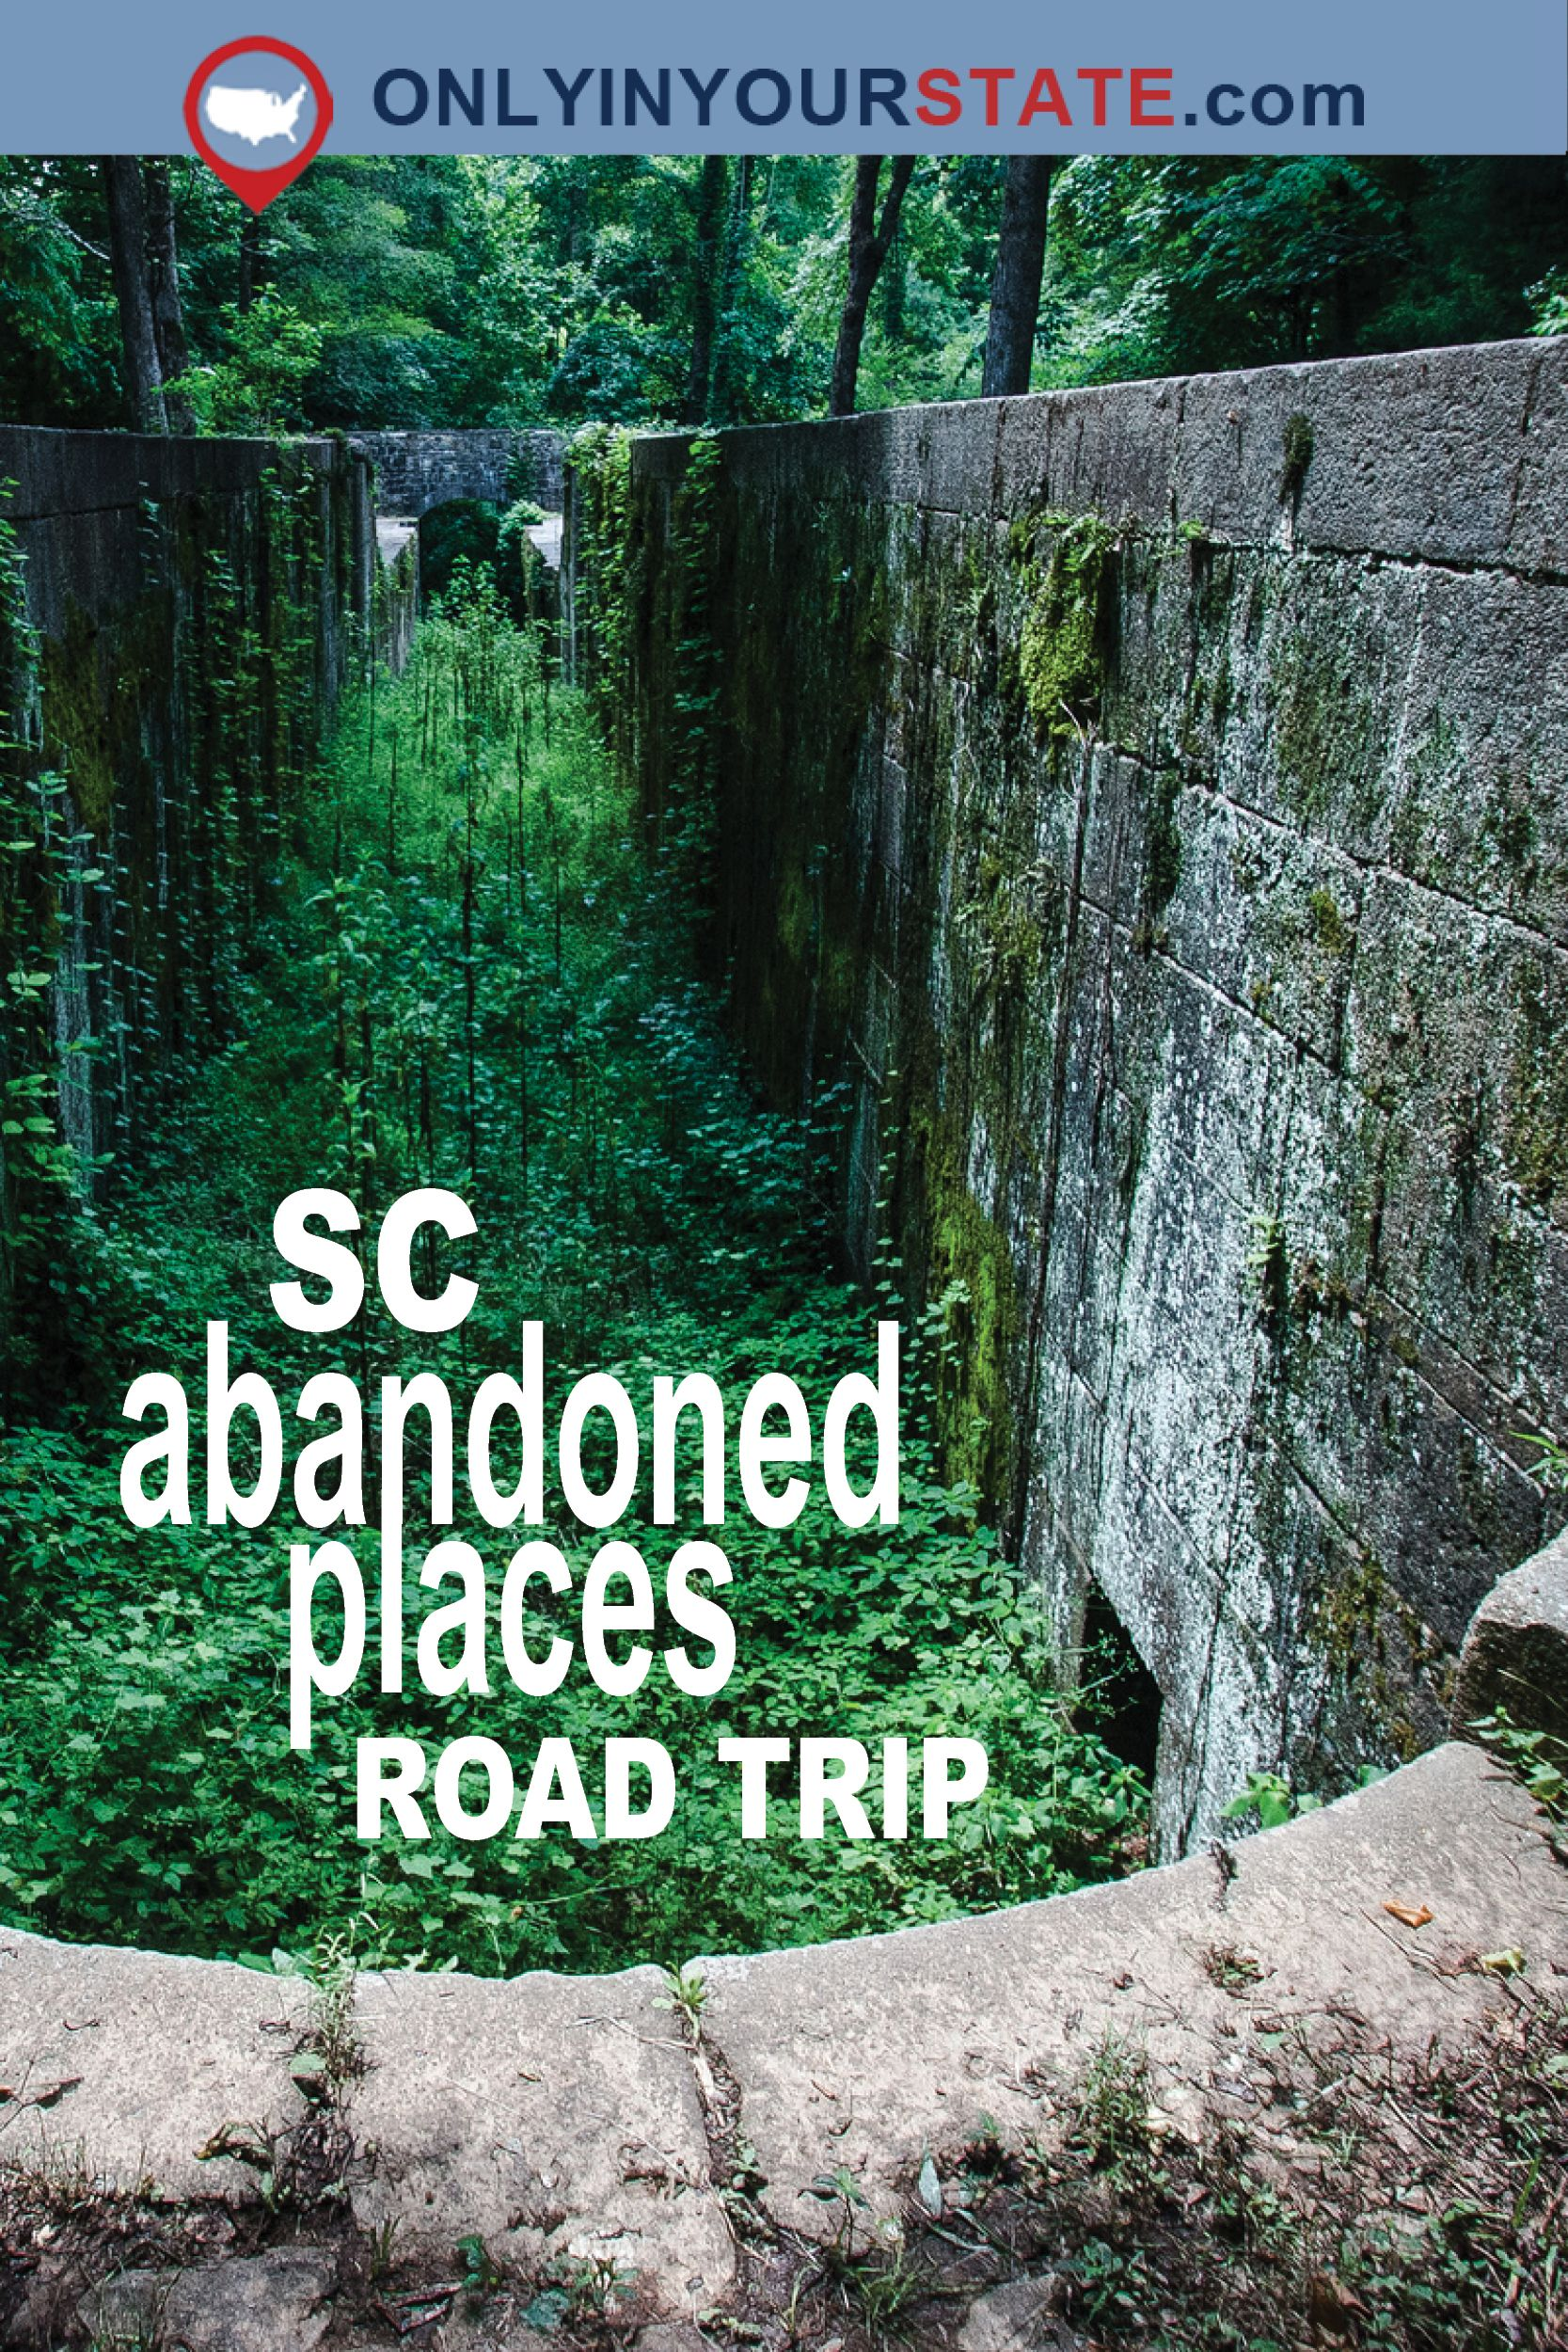 Travel   South Carolina   Abandoned Places   Forgotten Places   Desolate Places   Crumbling   Falling   Decaying   Abandoned US